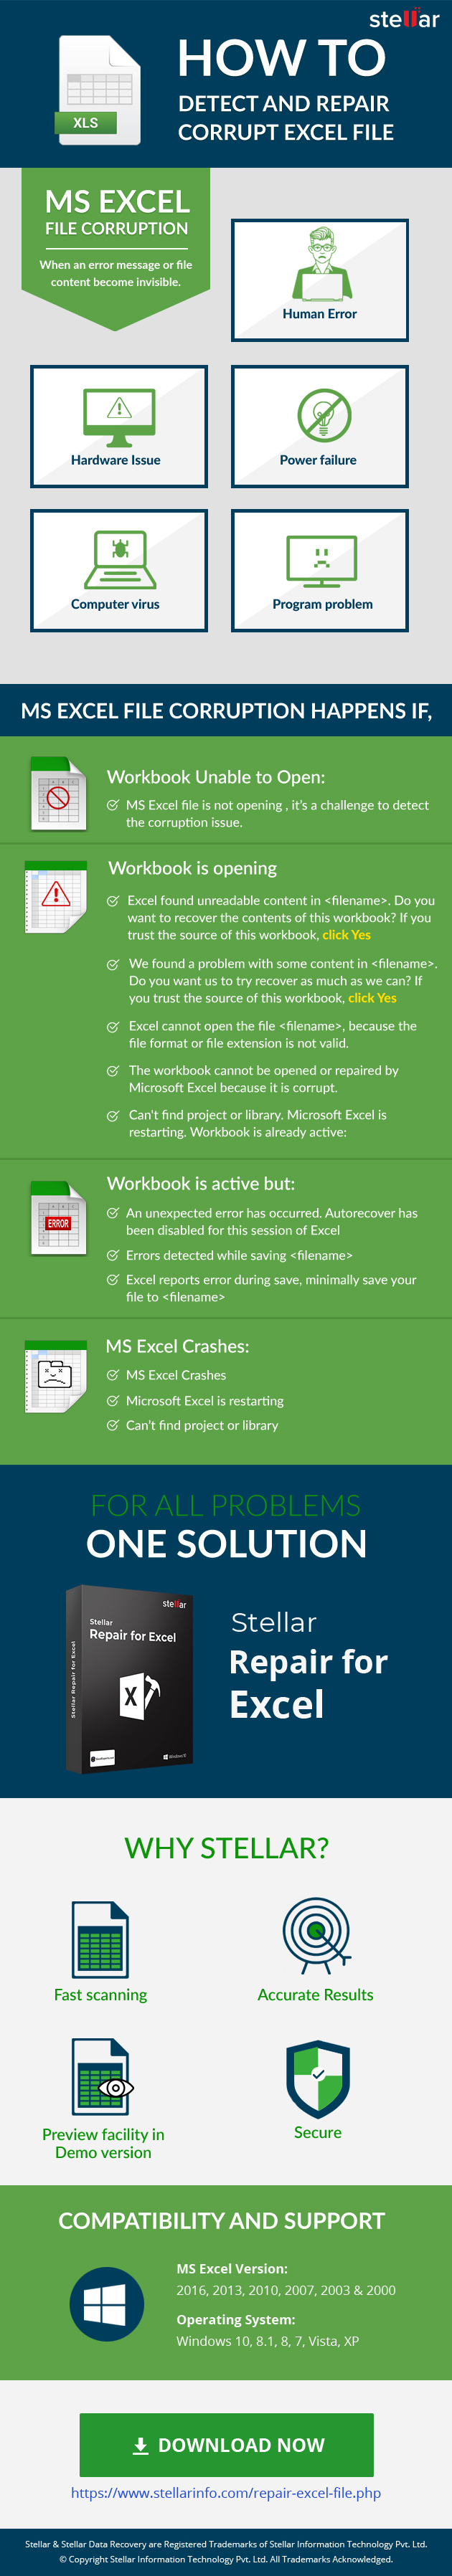 Detect and Repair corruption of MS Excel File